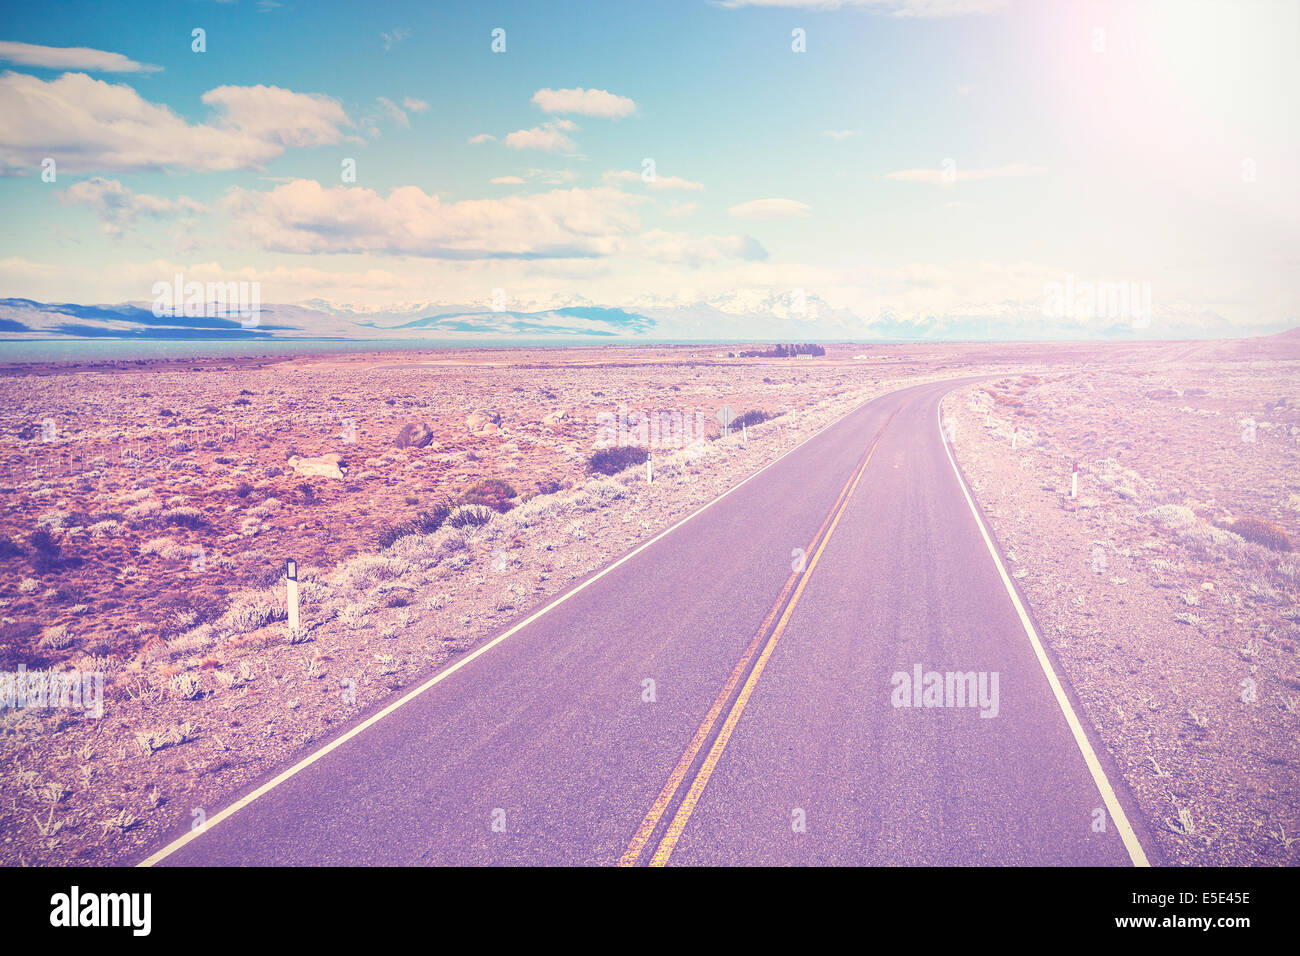 asphalt country road with back light, vintage style - Stock Image